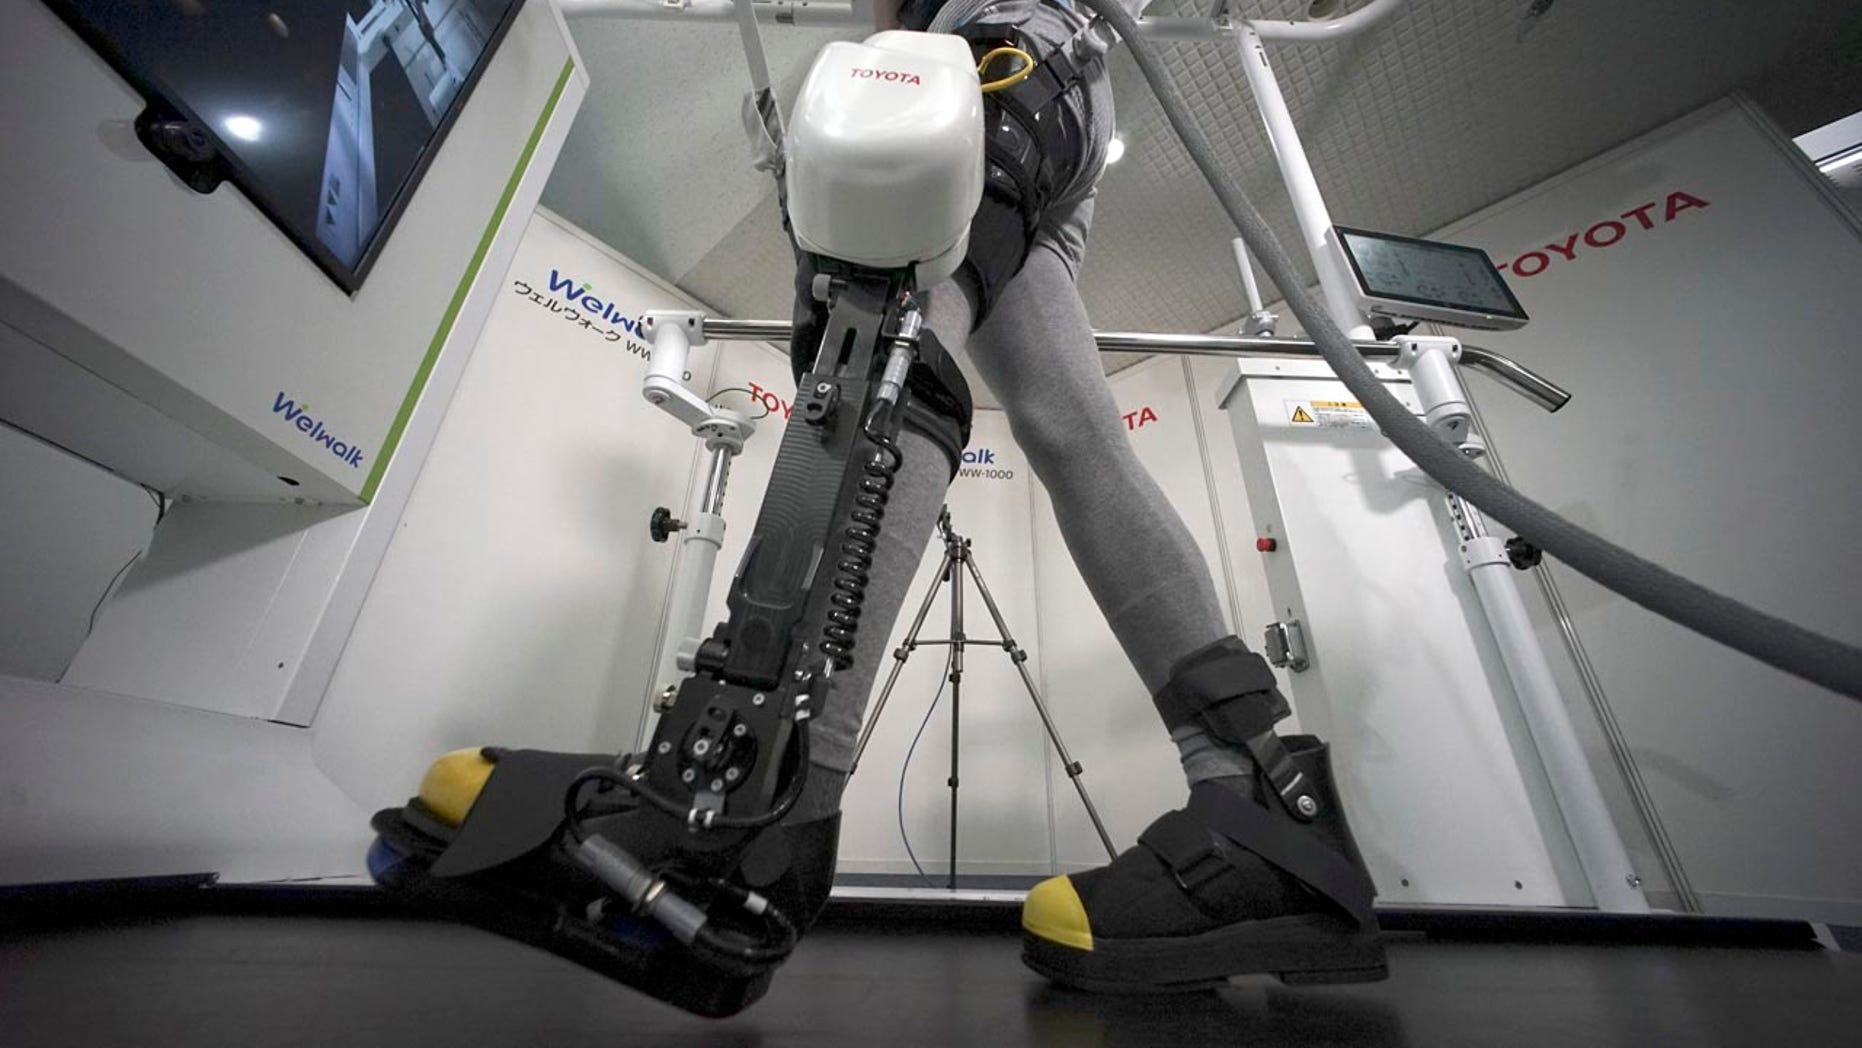 A model demonstrates the Welwalk WW-1000, a wearable robotic leg brace designed to help partially paralyzed people walk at the main system with treadmill and monitor, at Toyota Motor Corp.'s head office in Tokyo, Wednesday, April 12, 2017.